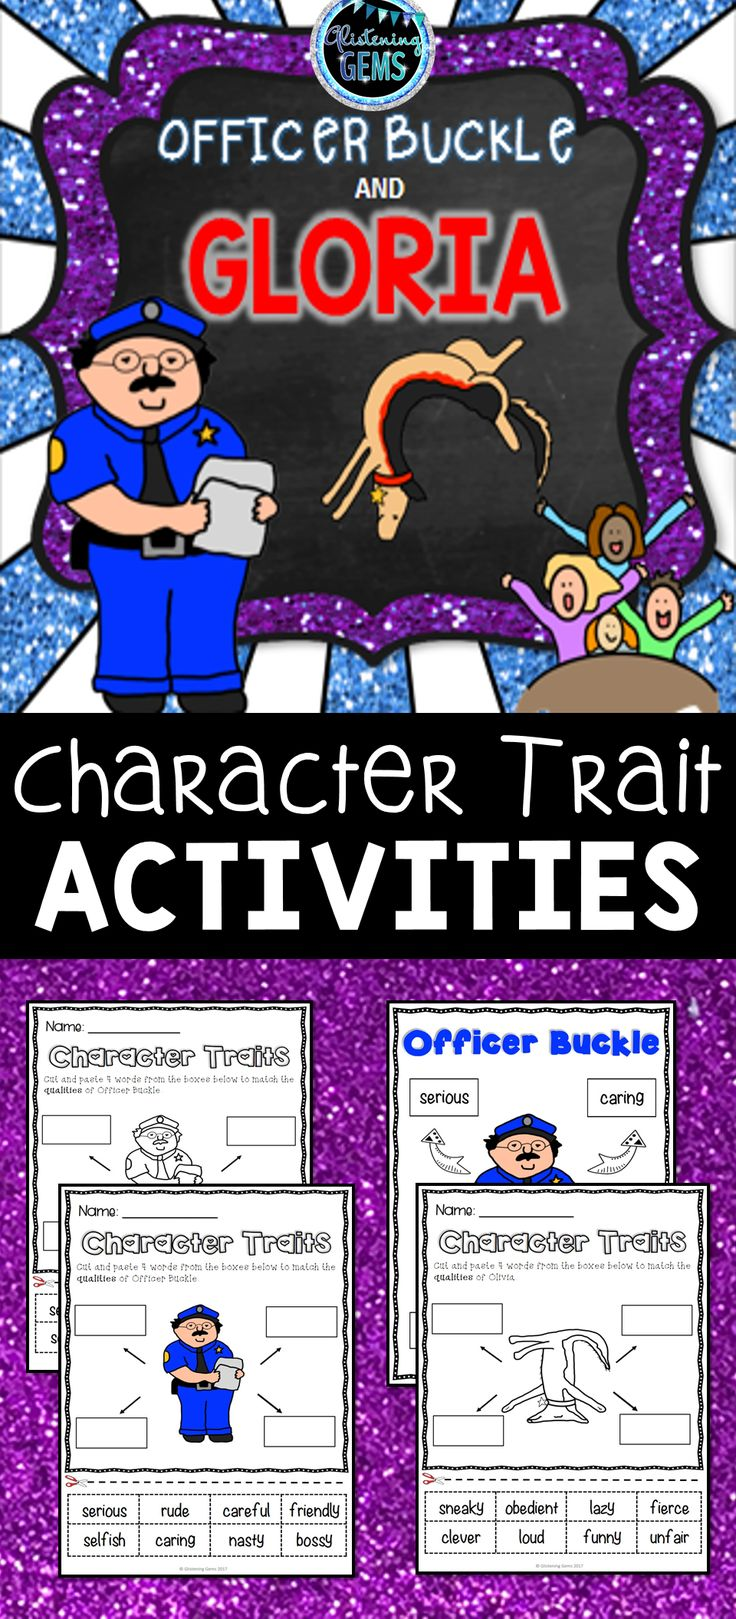 Officer Buckle and Gloria - Character traits, physical traits and feelings worksheets.